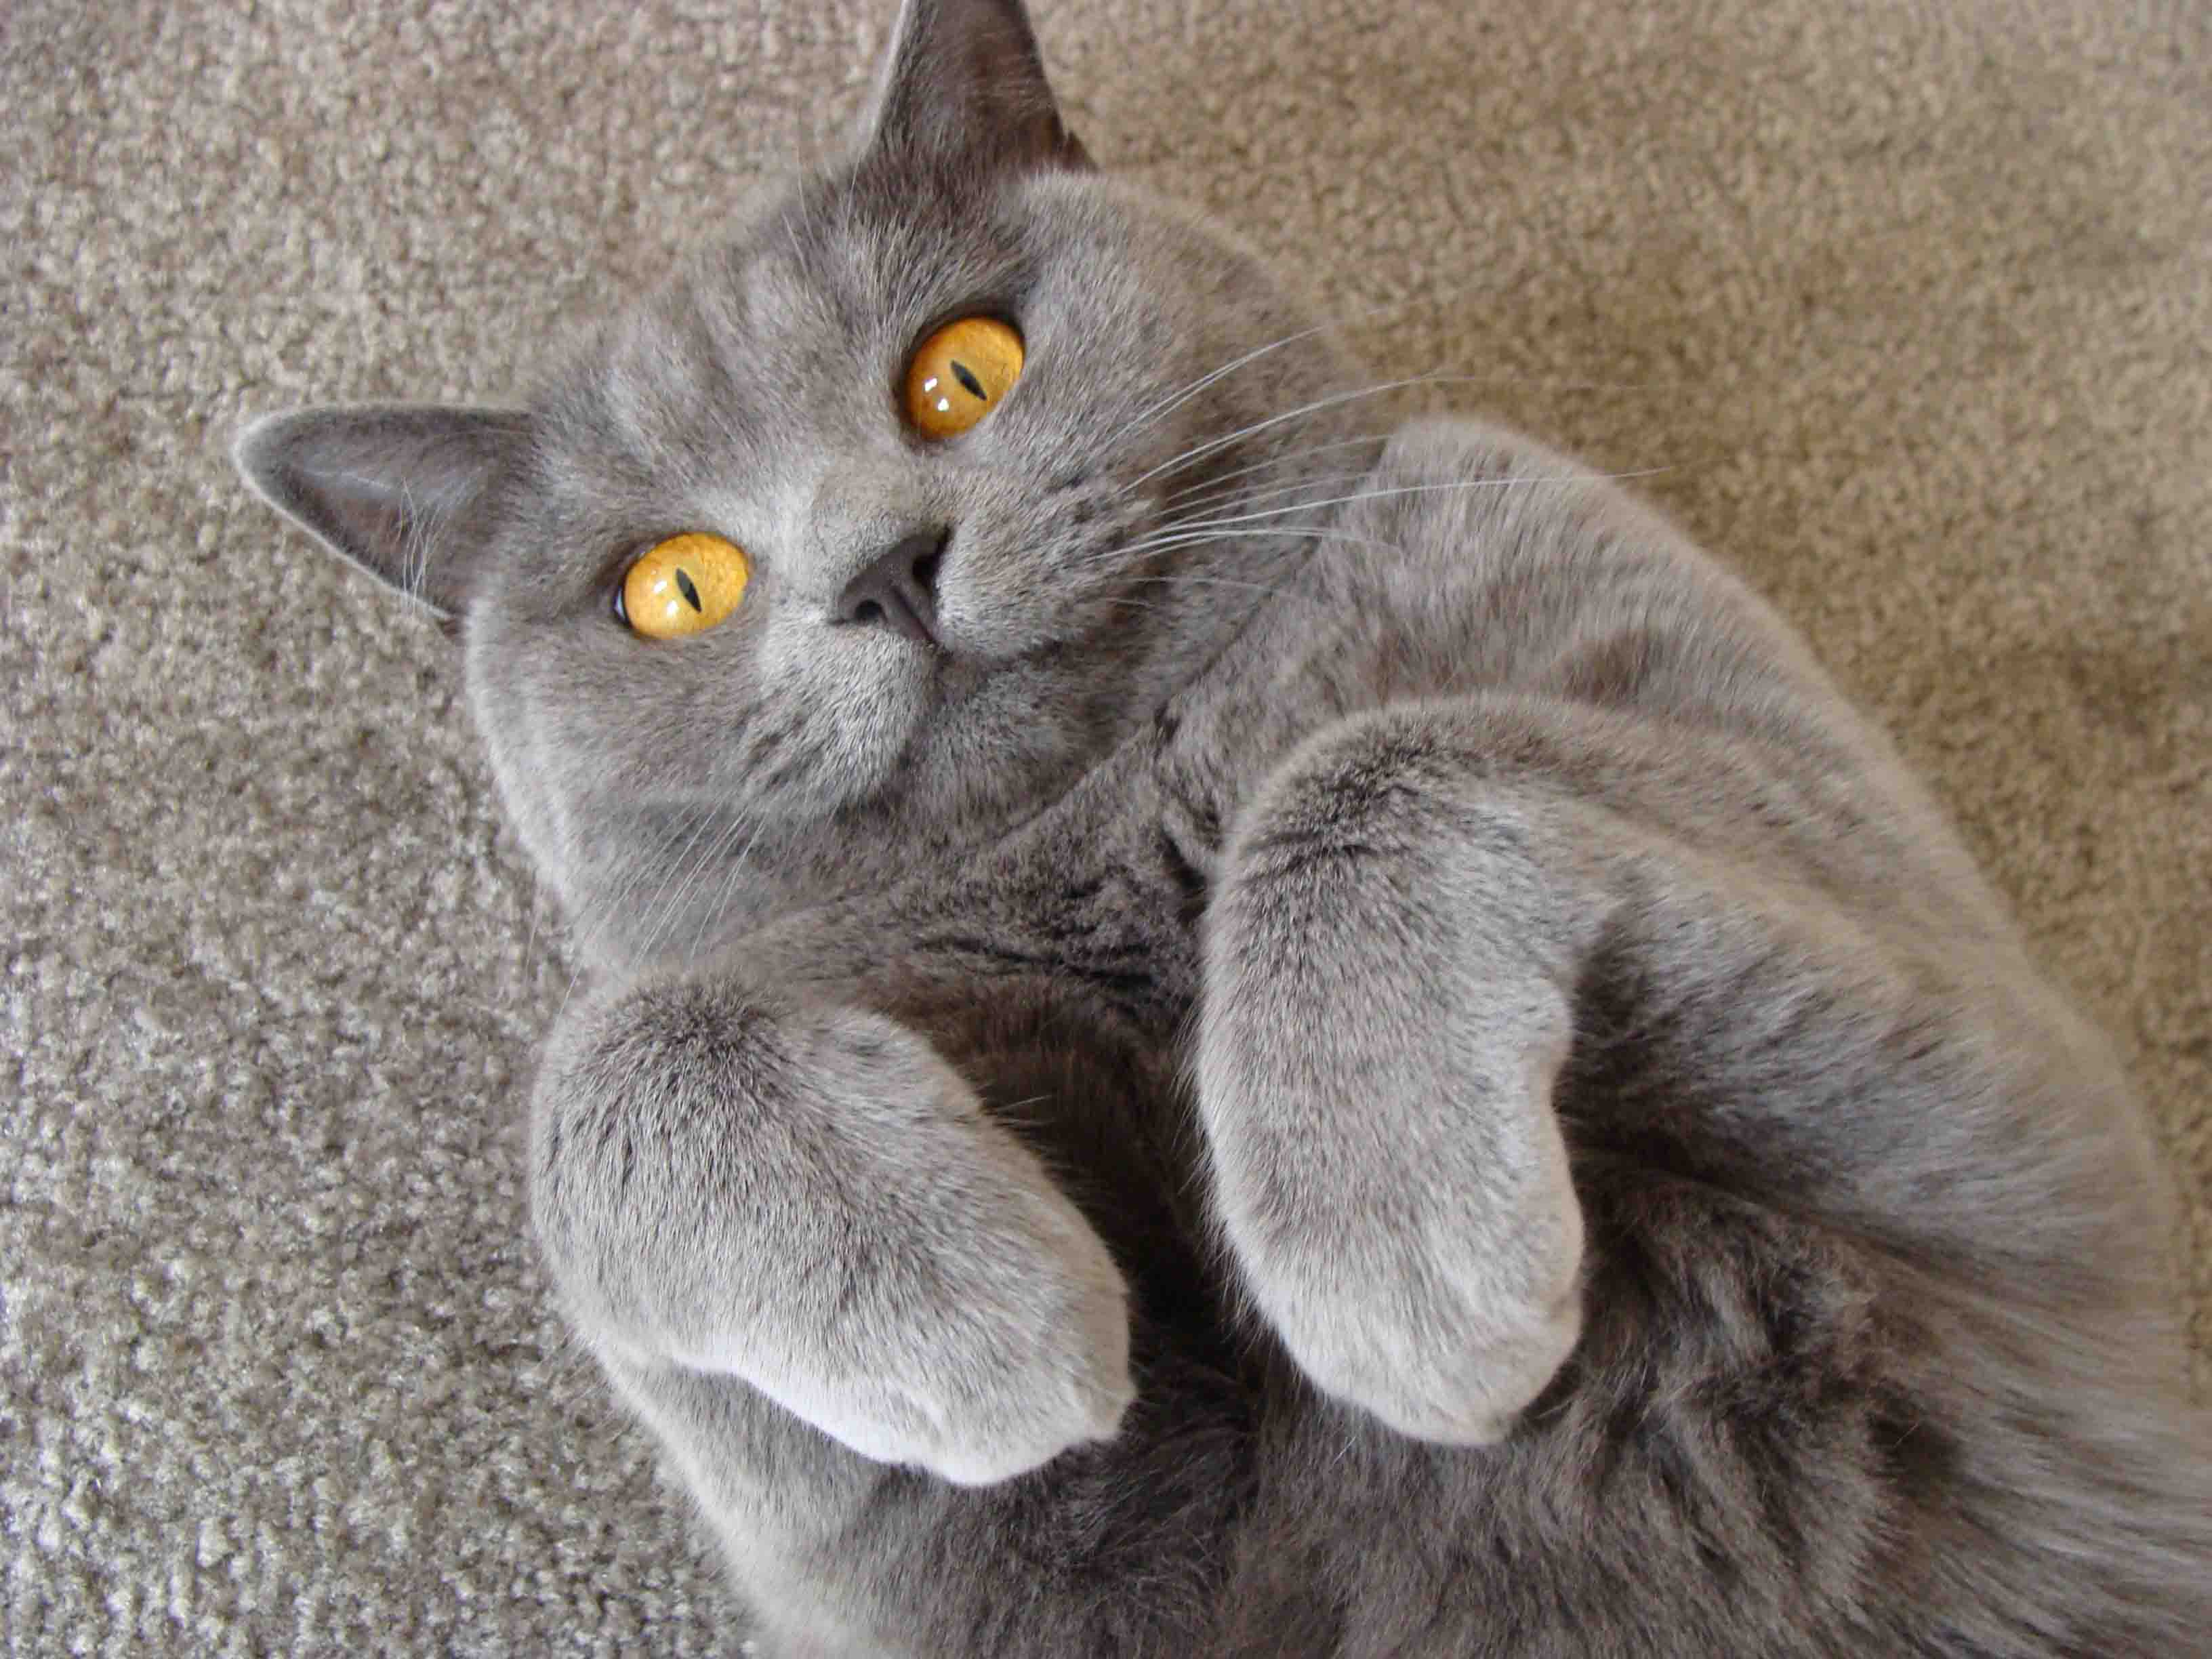 Pin by British Shorthair Martin on Cats <3 | Pinterest | British ...